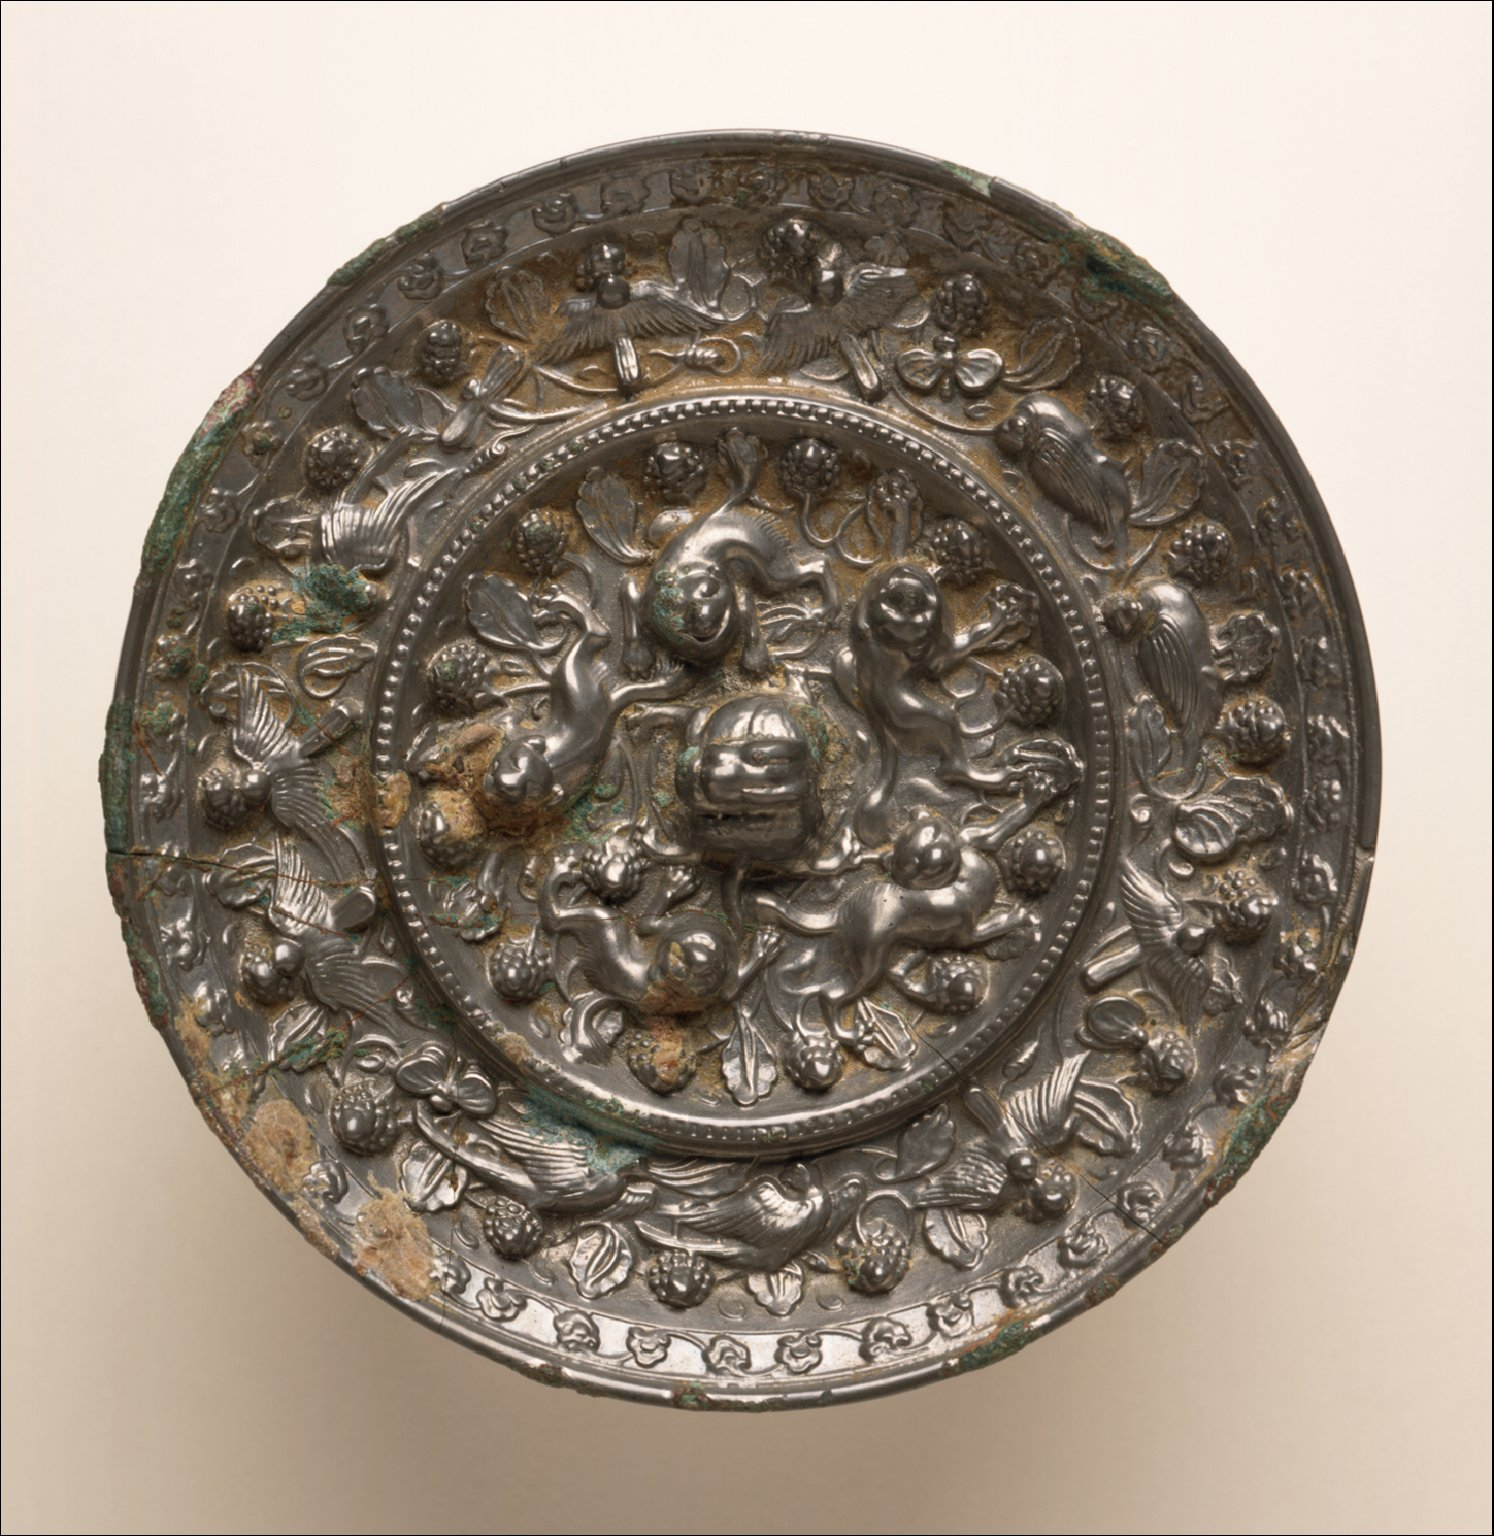 Mirror (Jing) with Grapevines, Birds, and Lions